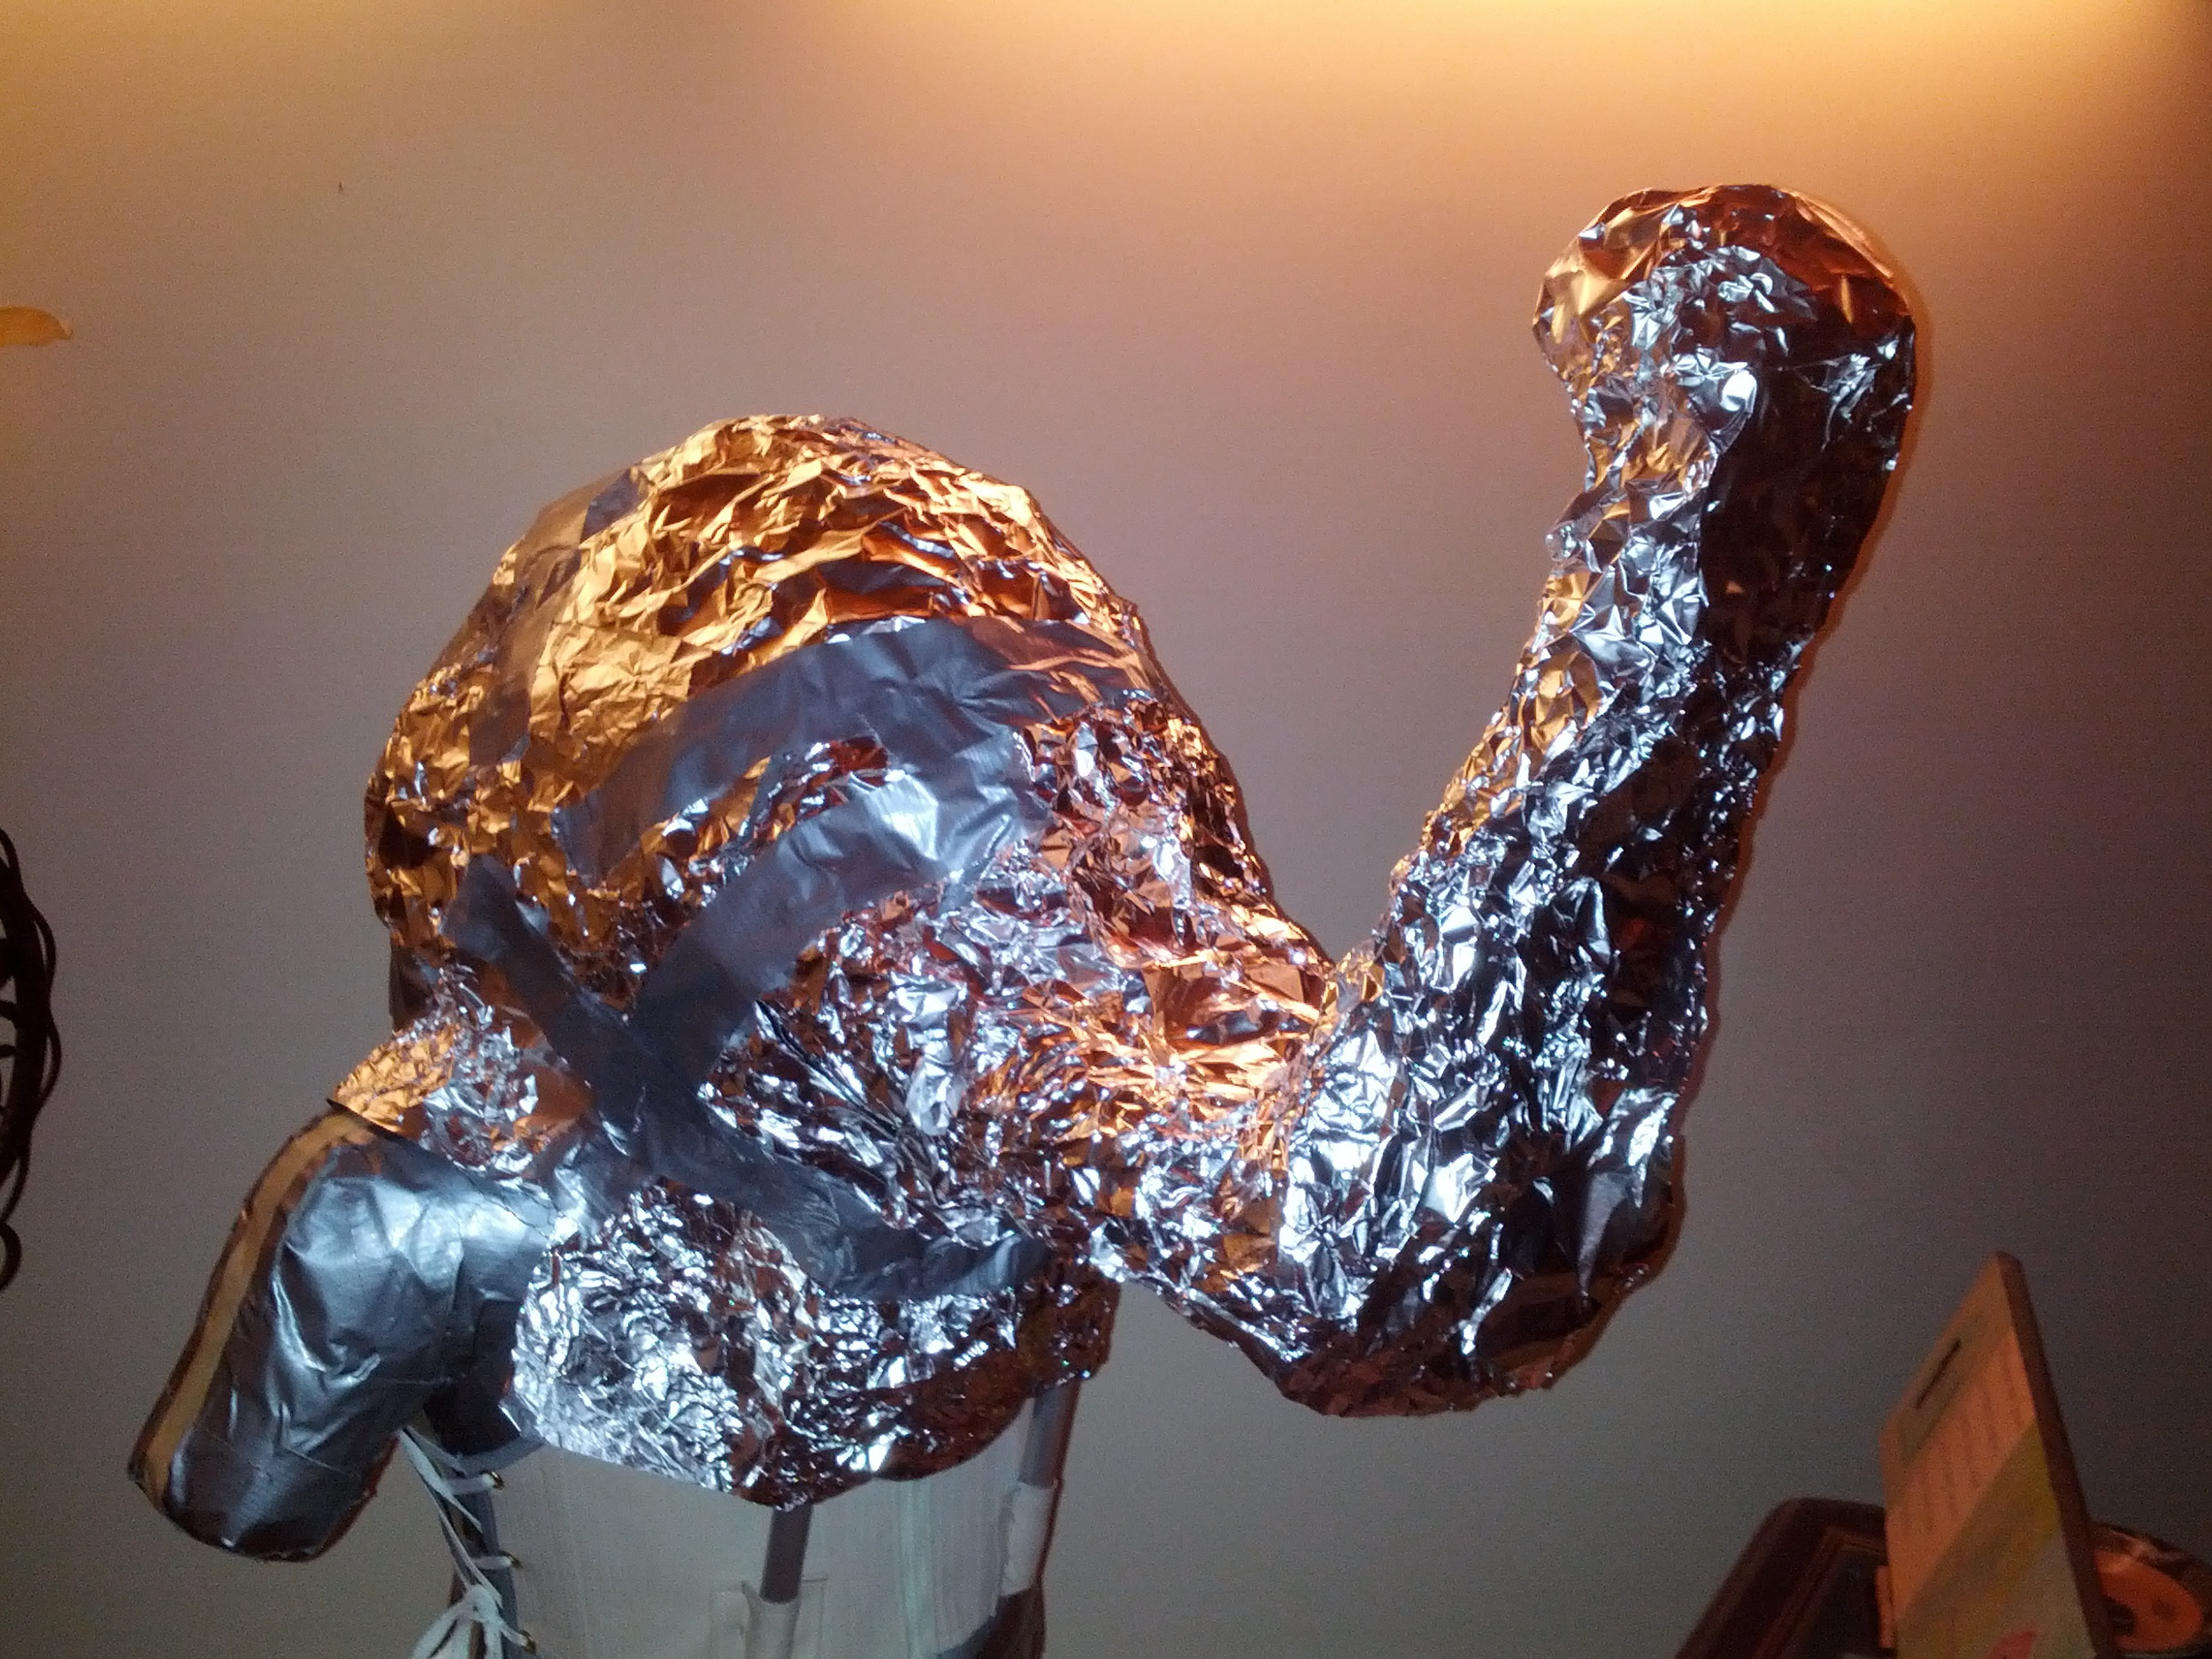 Cover with aluminum foil and then duct tape